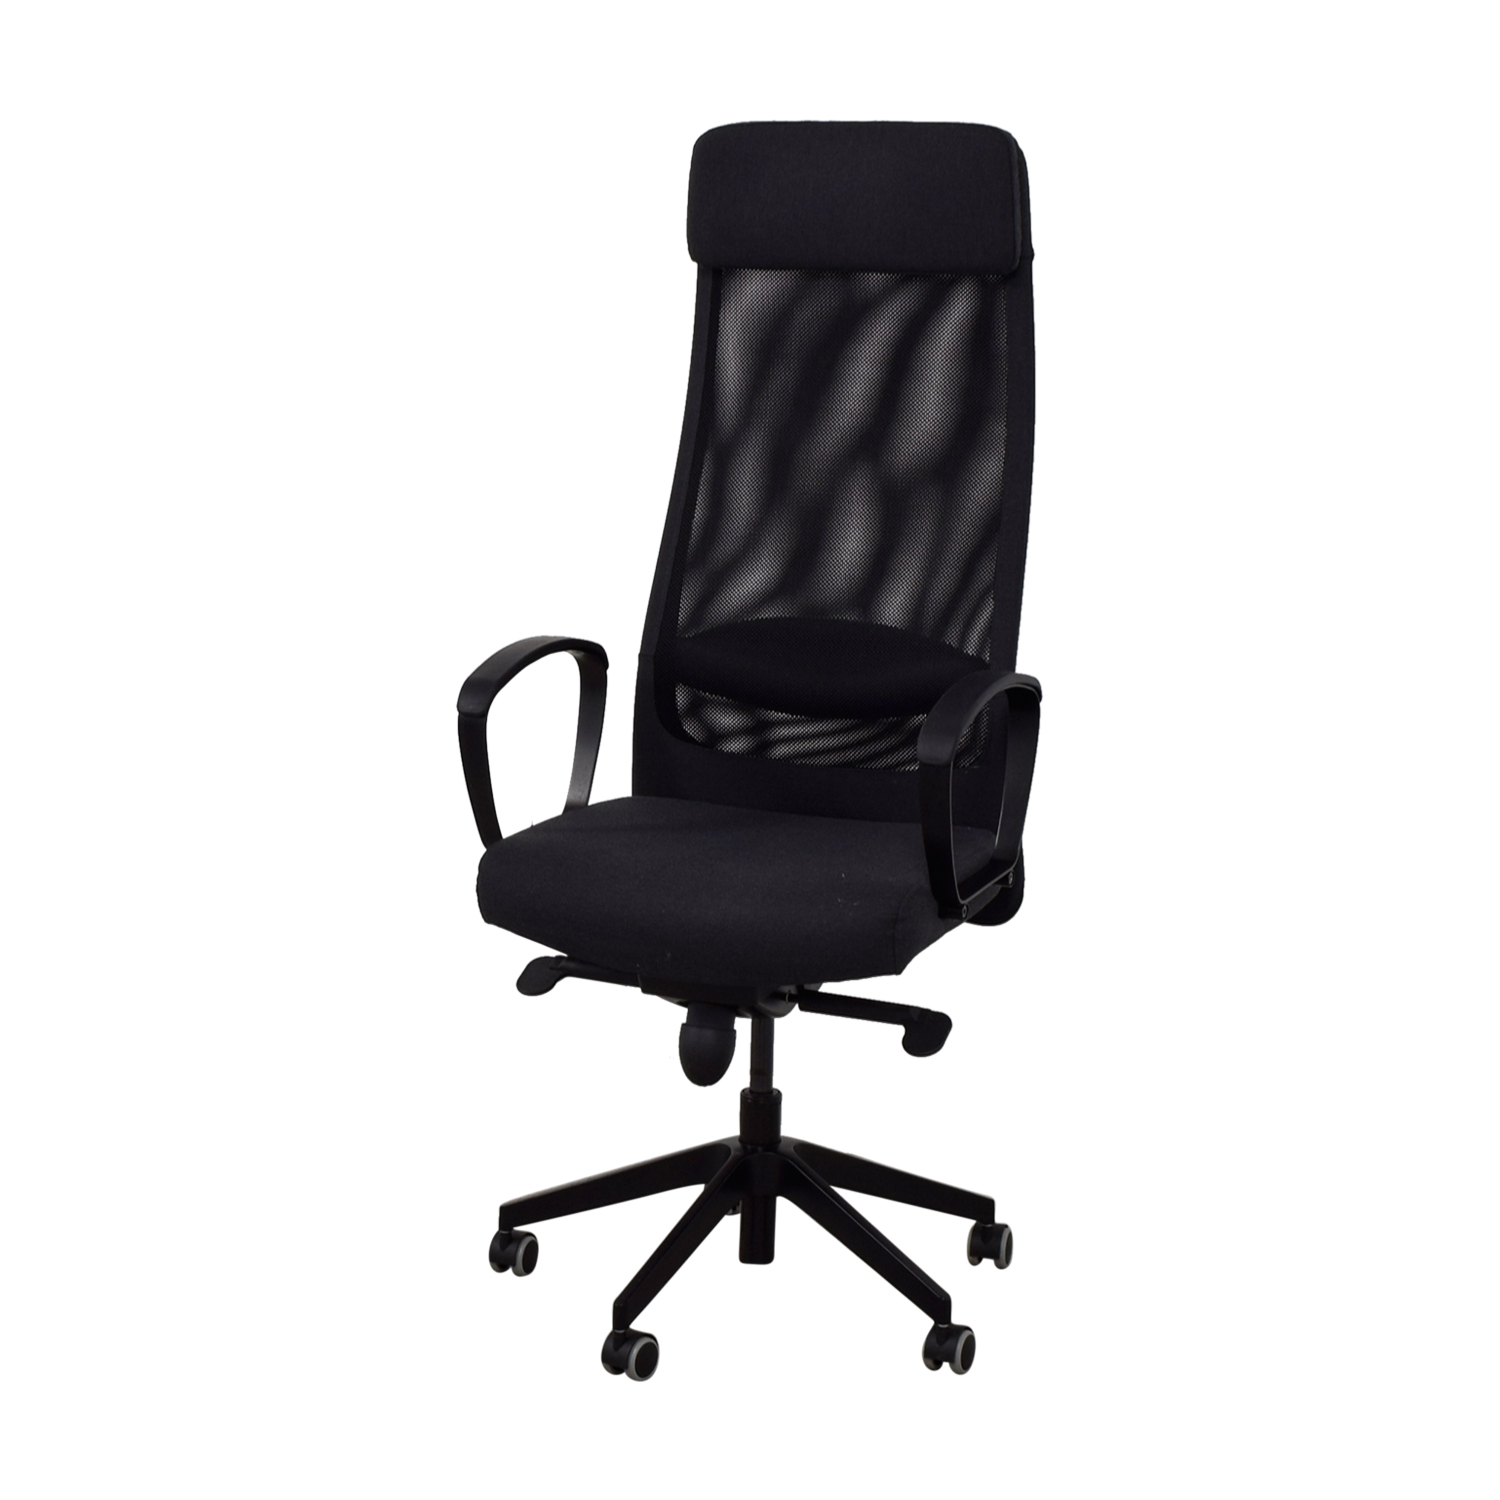 IKEA IKEA Black Office Chair / Chairs